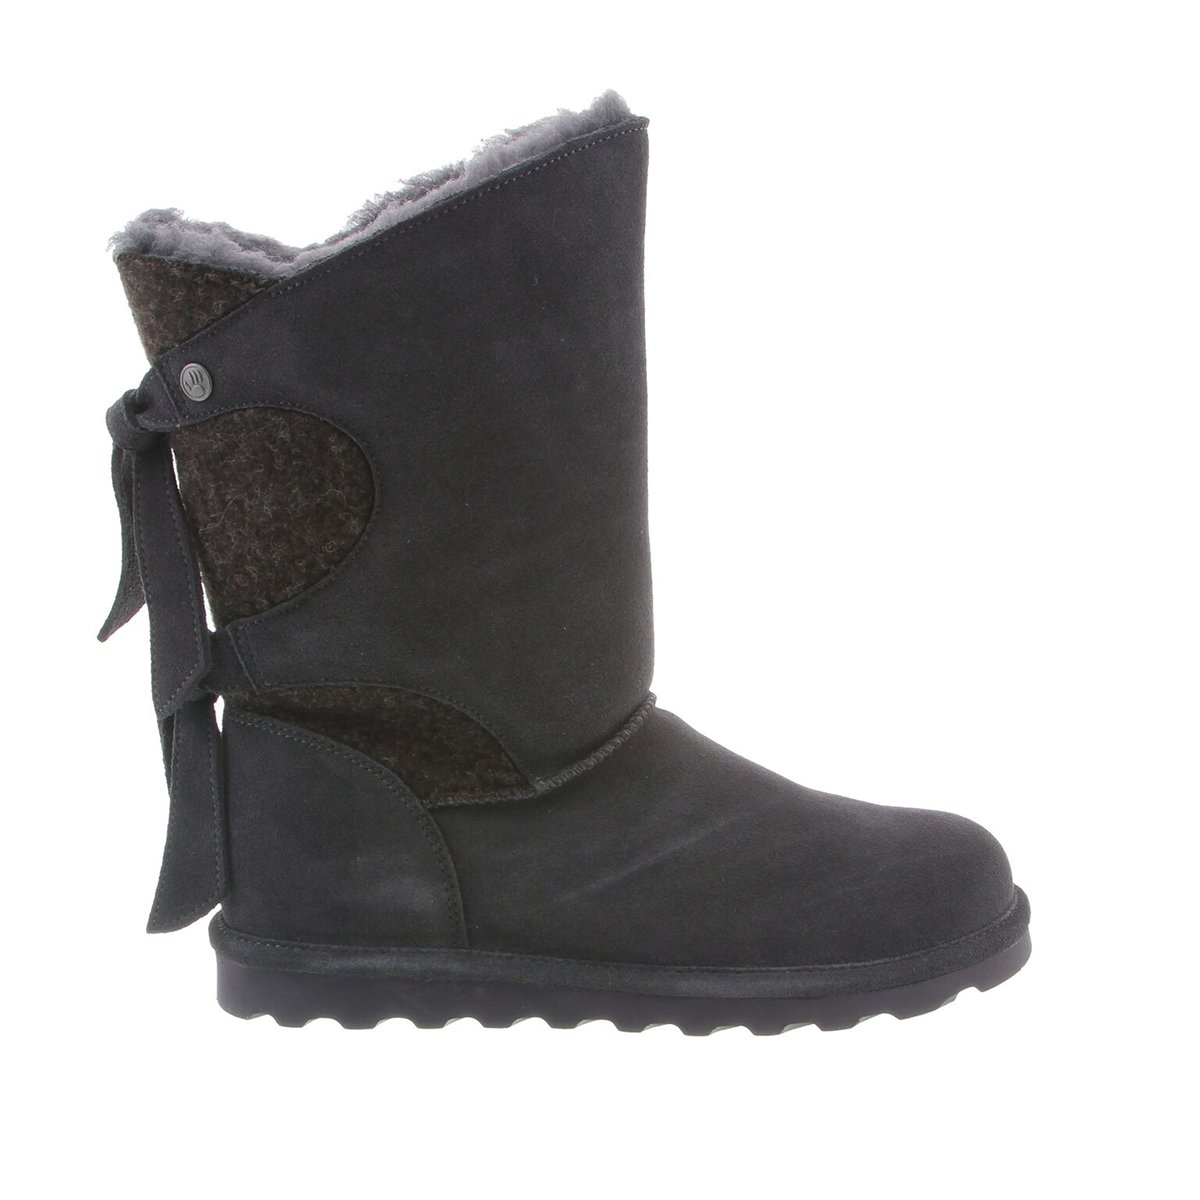 BEARPAW Womens Willow Winter Boot Charcoal Size 7